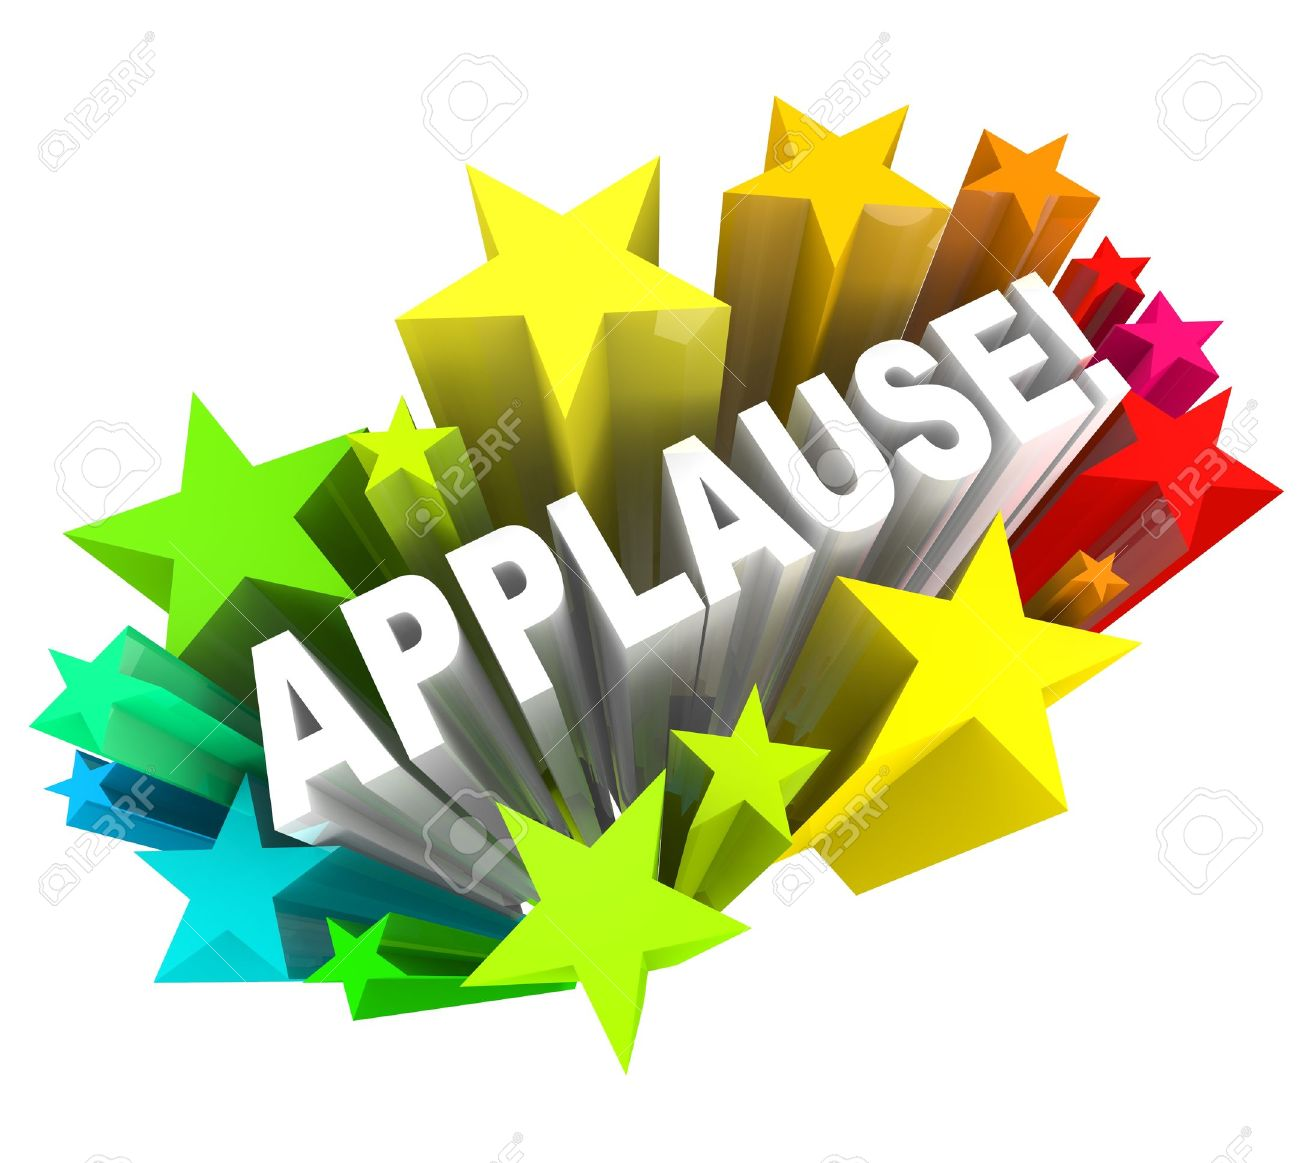 The word Applause surrounded by colorful stars to symbolize support, enthusiasm, approval, ovation,  or other positive reaction or feedback Stock Photo - 15513408